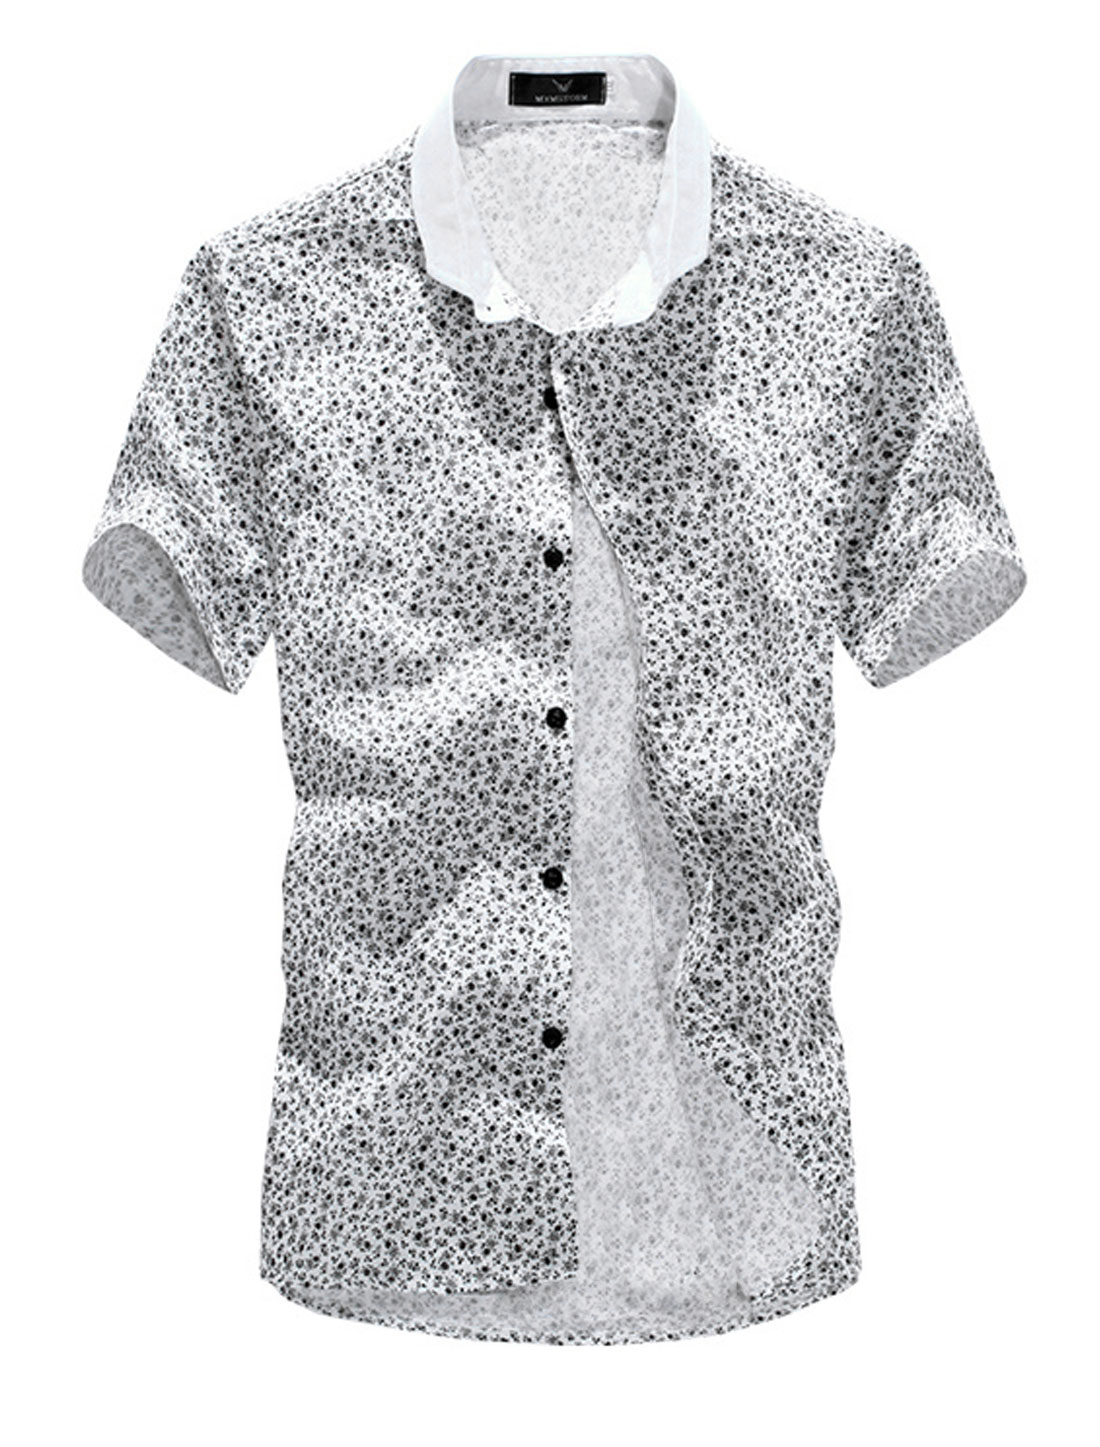 Buttons Closure Floral Prints Cozy Fit Top Shirt for Men White M